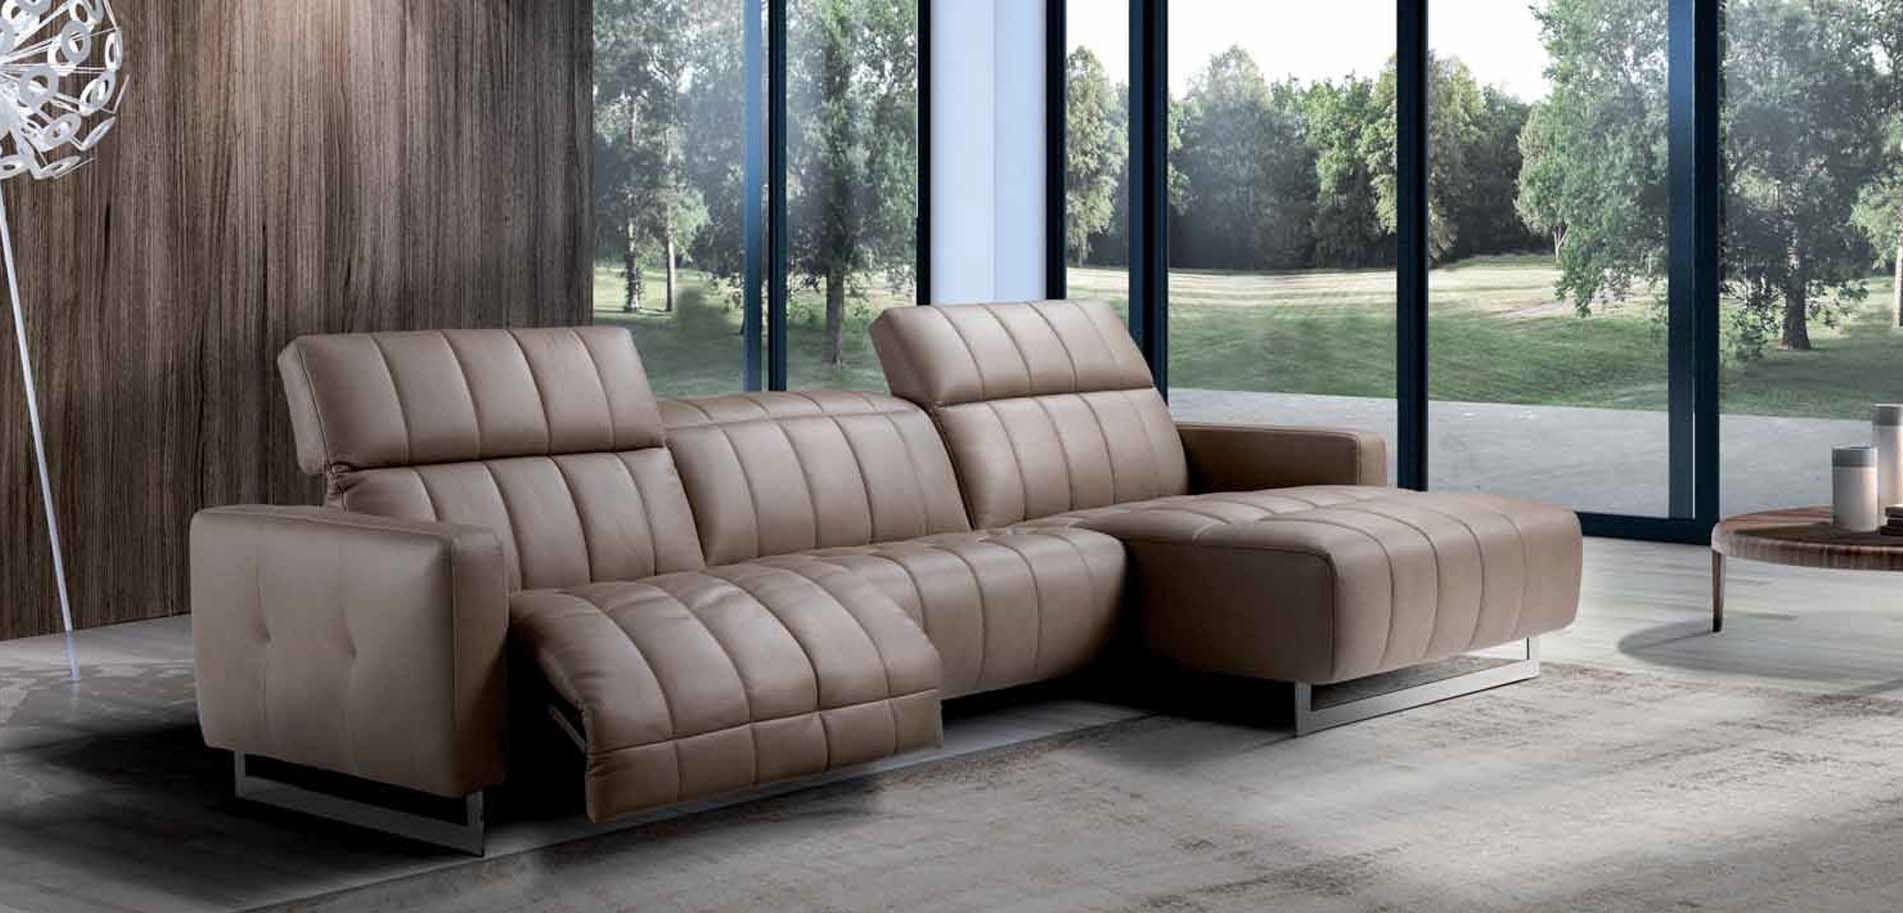 Max Divani Leather Sofa Max Divani Sofa Bazar Leather Sofa By Max Divani Thesofa